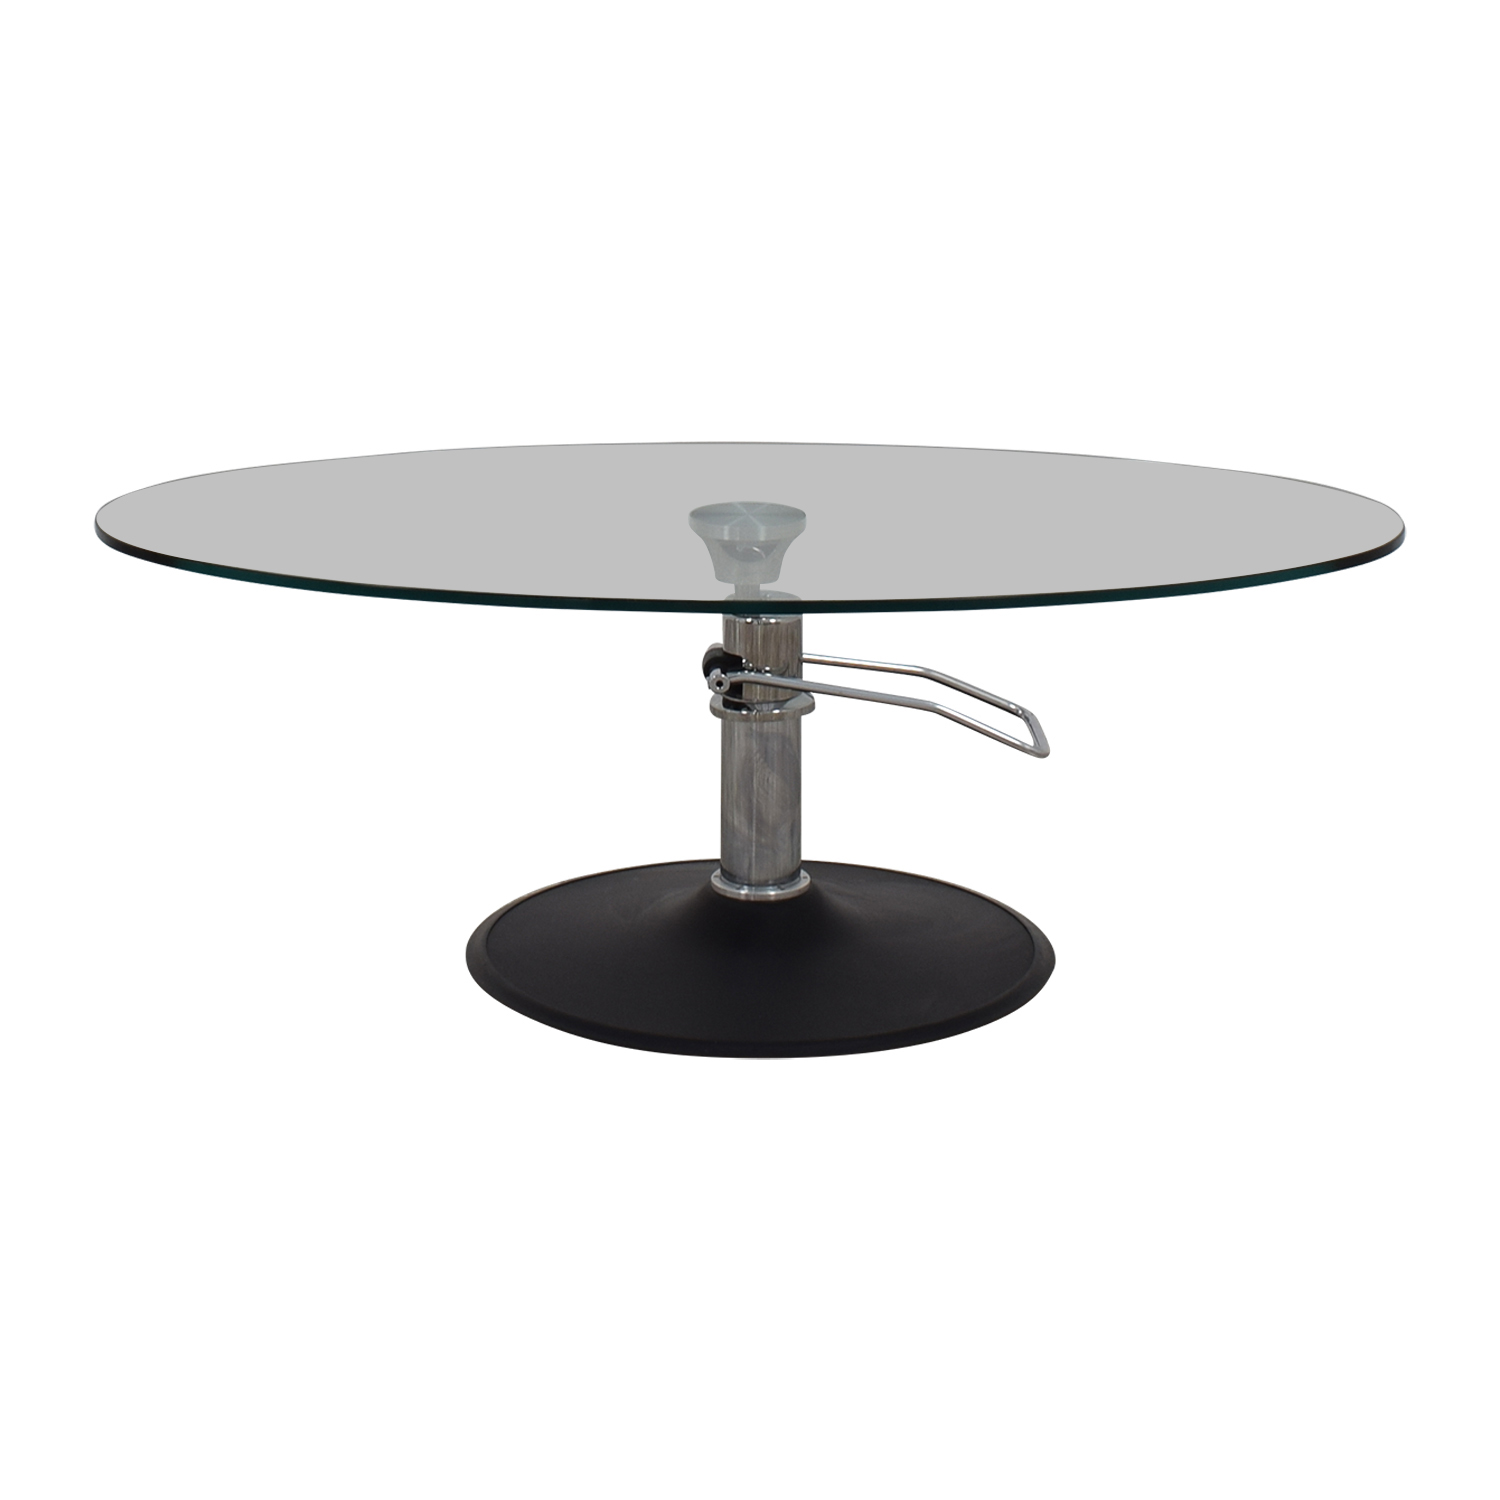 Hydra Designs Hydra Designs Oval Adjustable Glass Coffee Table Coffee Tables